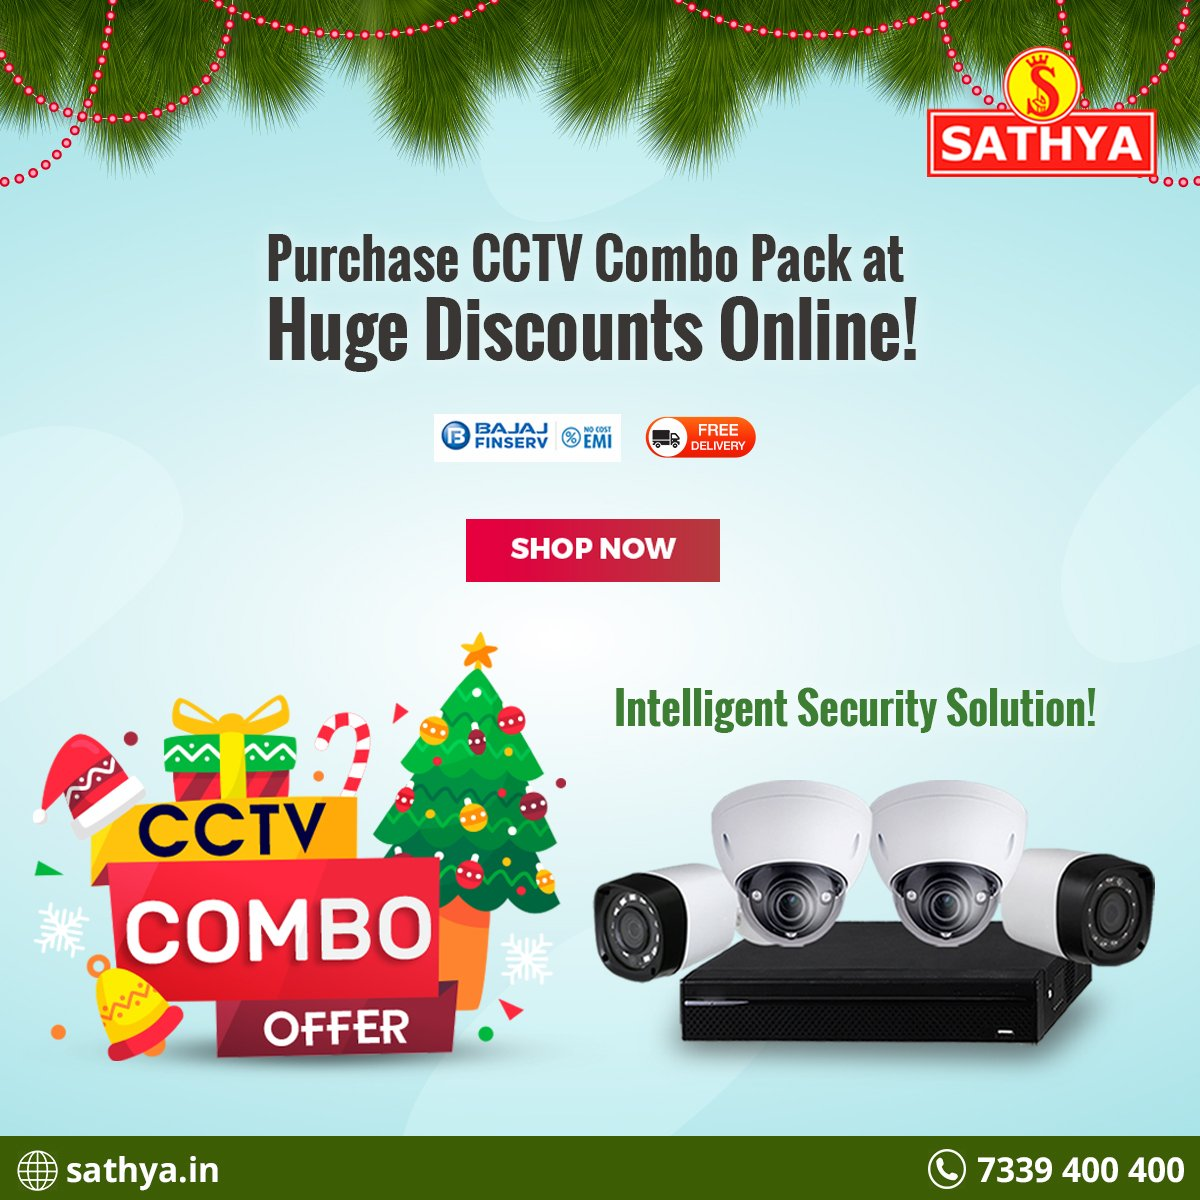 #CCTVCombo Offer! This #Christmas take a pledge to keep your surrounding safe and secure! Get branded #CCTVCameras and ensure #security eveywhere! Visit http://www.sathya.in or call 7339400400 for details.  Grab #CCTV Offers here @ #SathyaOnline : https://tiny.sg/cQ0DfTUpic.twitter.com/Yy3OSpk8UD